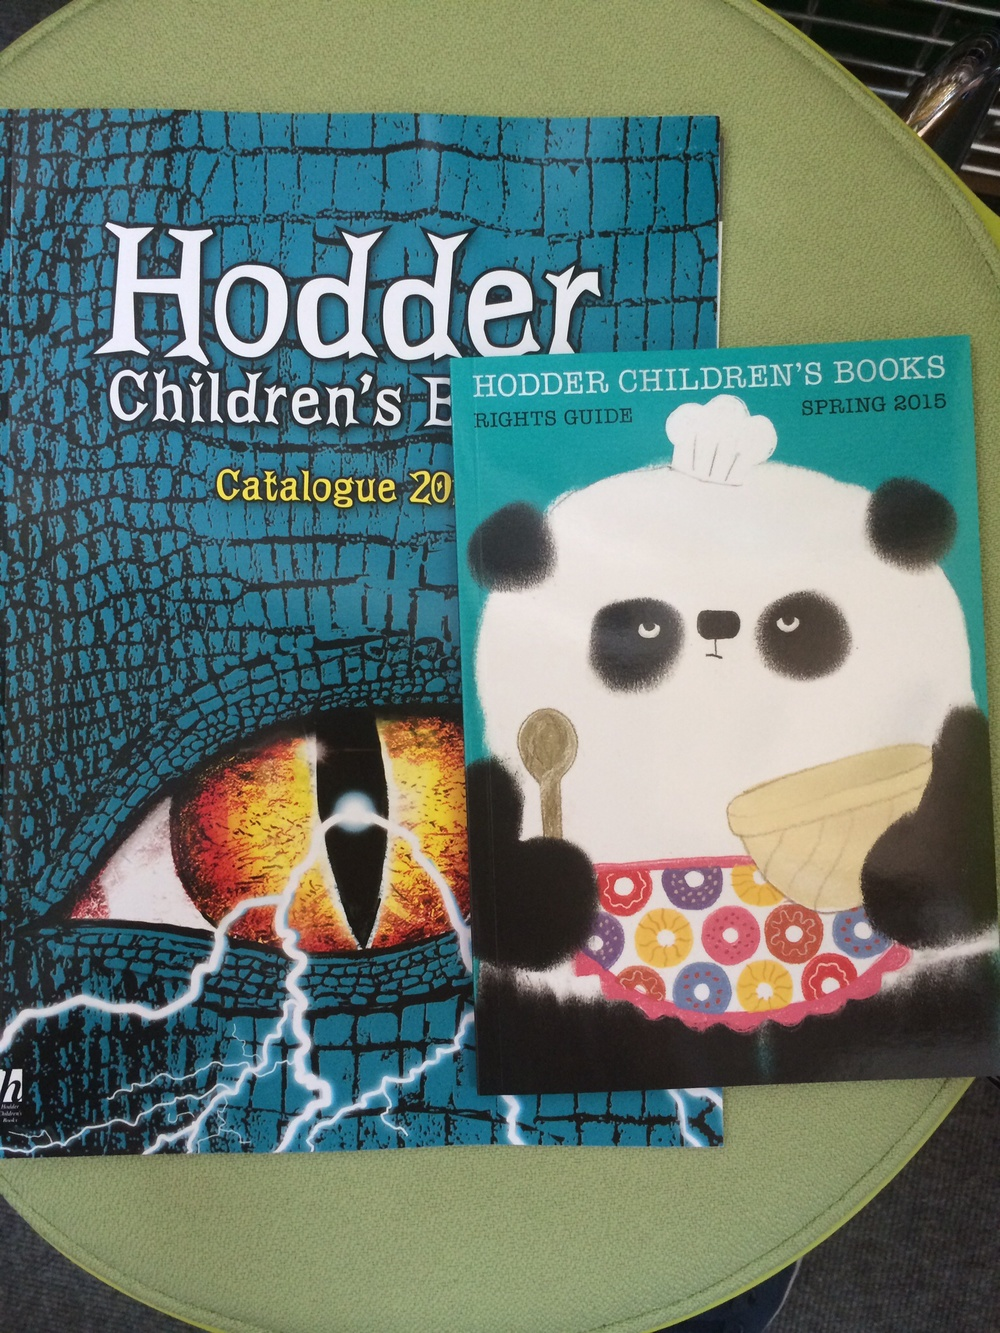 The Hodder Children's catalogues.